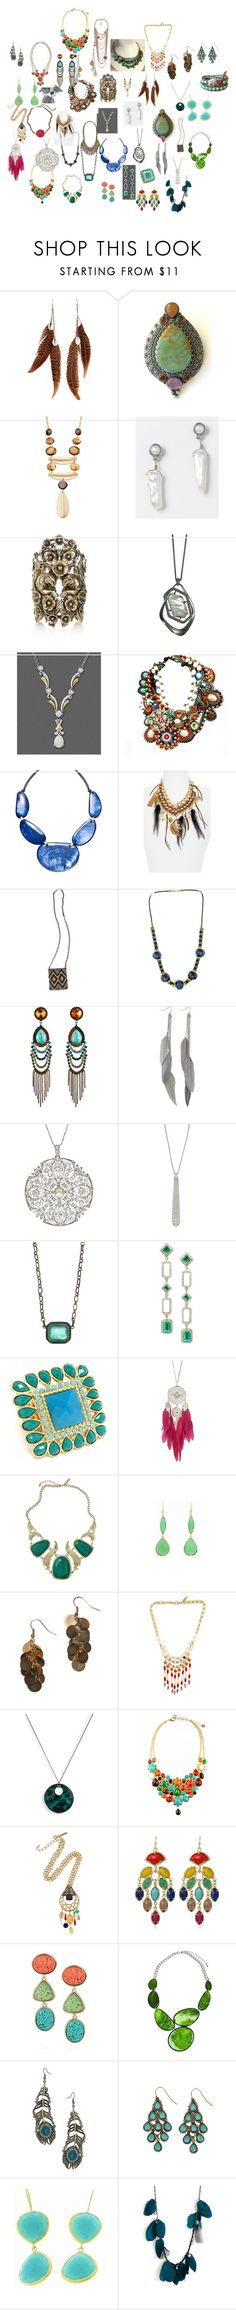 """""""Soft Natural Jewelry (Mostly)"""" by authenticbeauty ❤ liked on Polyvore featuring MANGO, Carolyn Pollack/Relios, Alfani, Ann Taylor, Roberto Cavalli, Alexis Bittar, Style & Co., Gypsy, Micha Design and Scotch & Soda"""